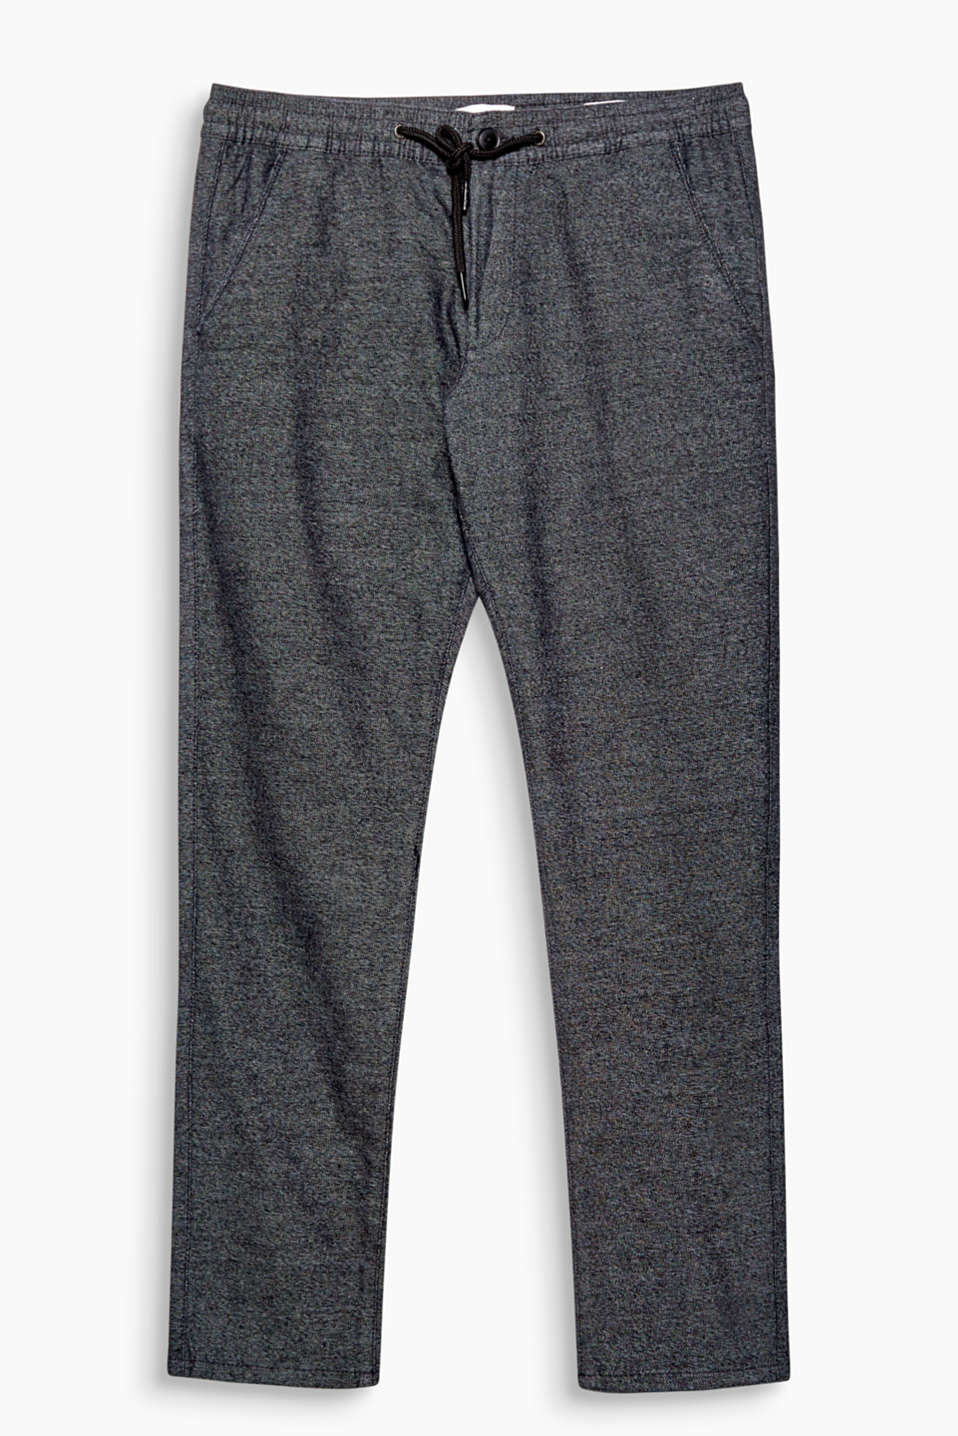 The trend of the season: Tracksuit bottoms! This design features a melange twill texture.